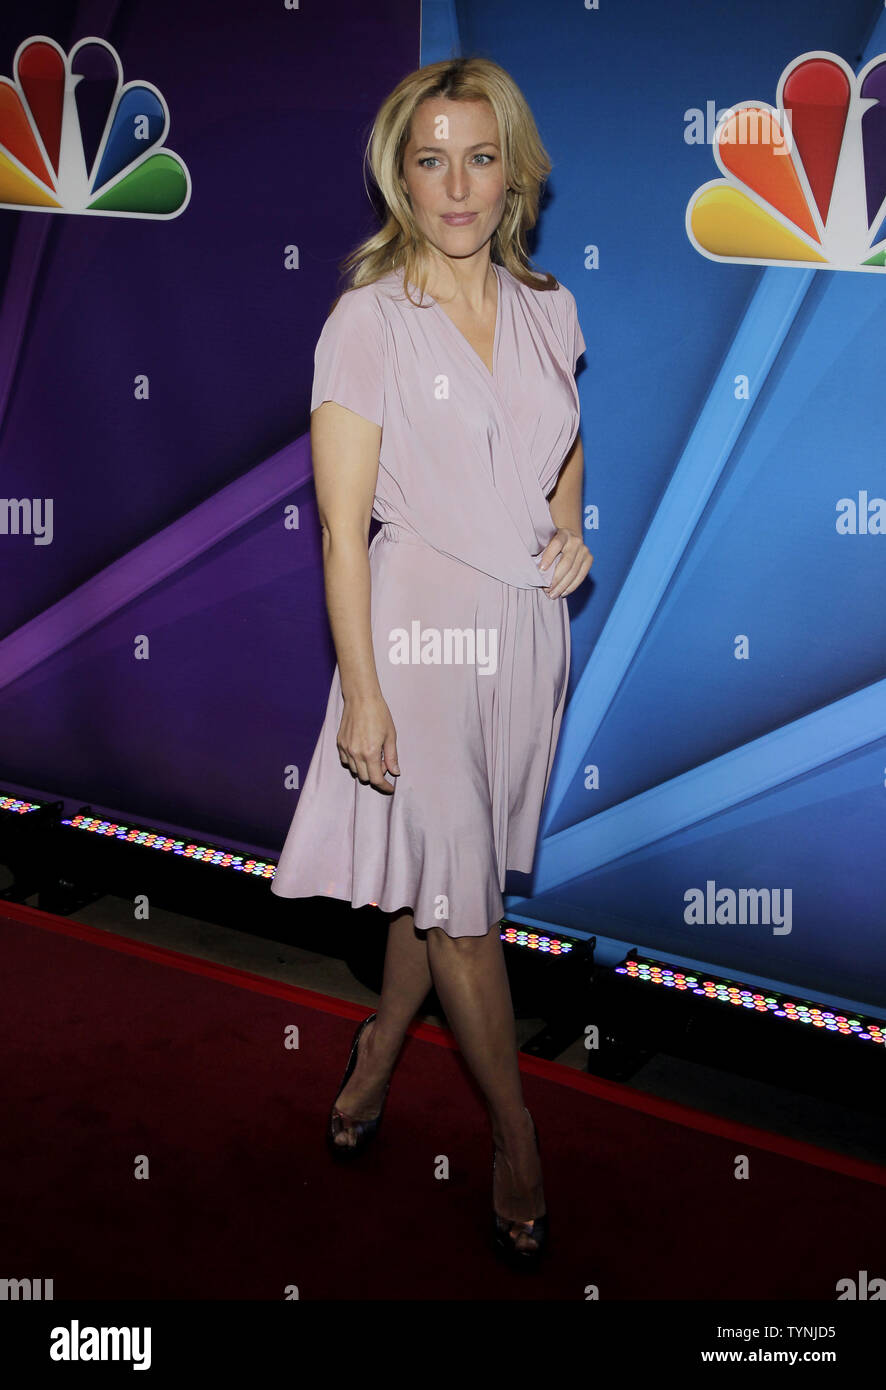 Gillian Anderson arrives on the red carpet at the 2013 NBC Upfront Presentation at Radio City Music Hall in New York City on May 13, 2013.    UPI/John Angelillo Stock Photo